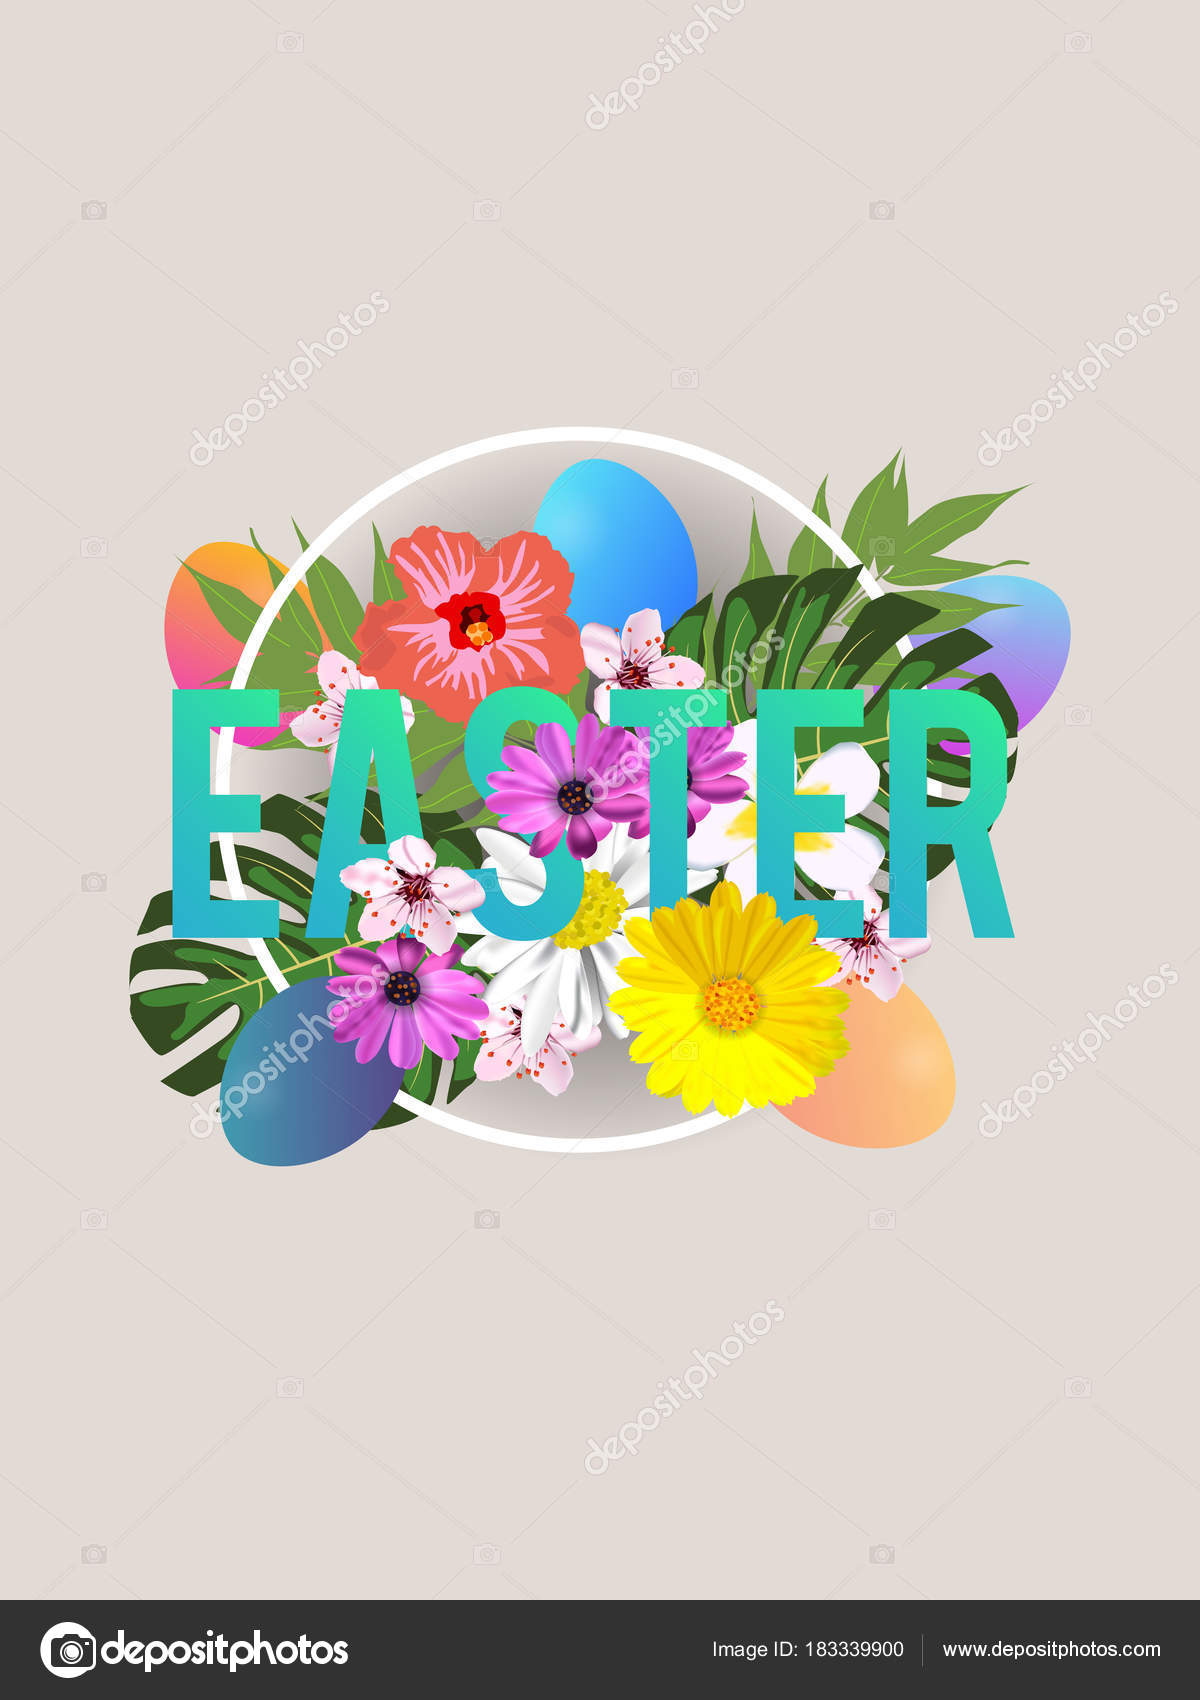 Aster sale banner background template beautiful colorful spring aster sale banner background template beautiful colorful spring flowers eggs stock vector mightylinksfo